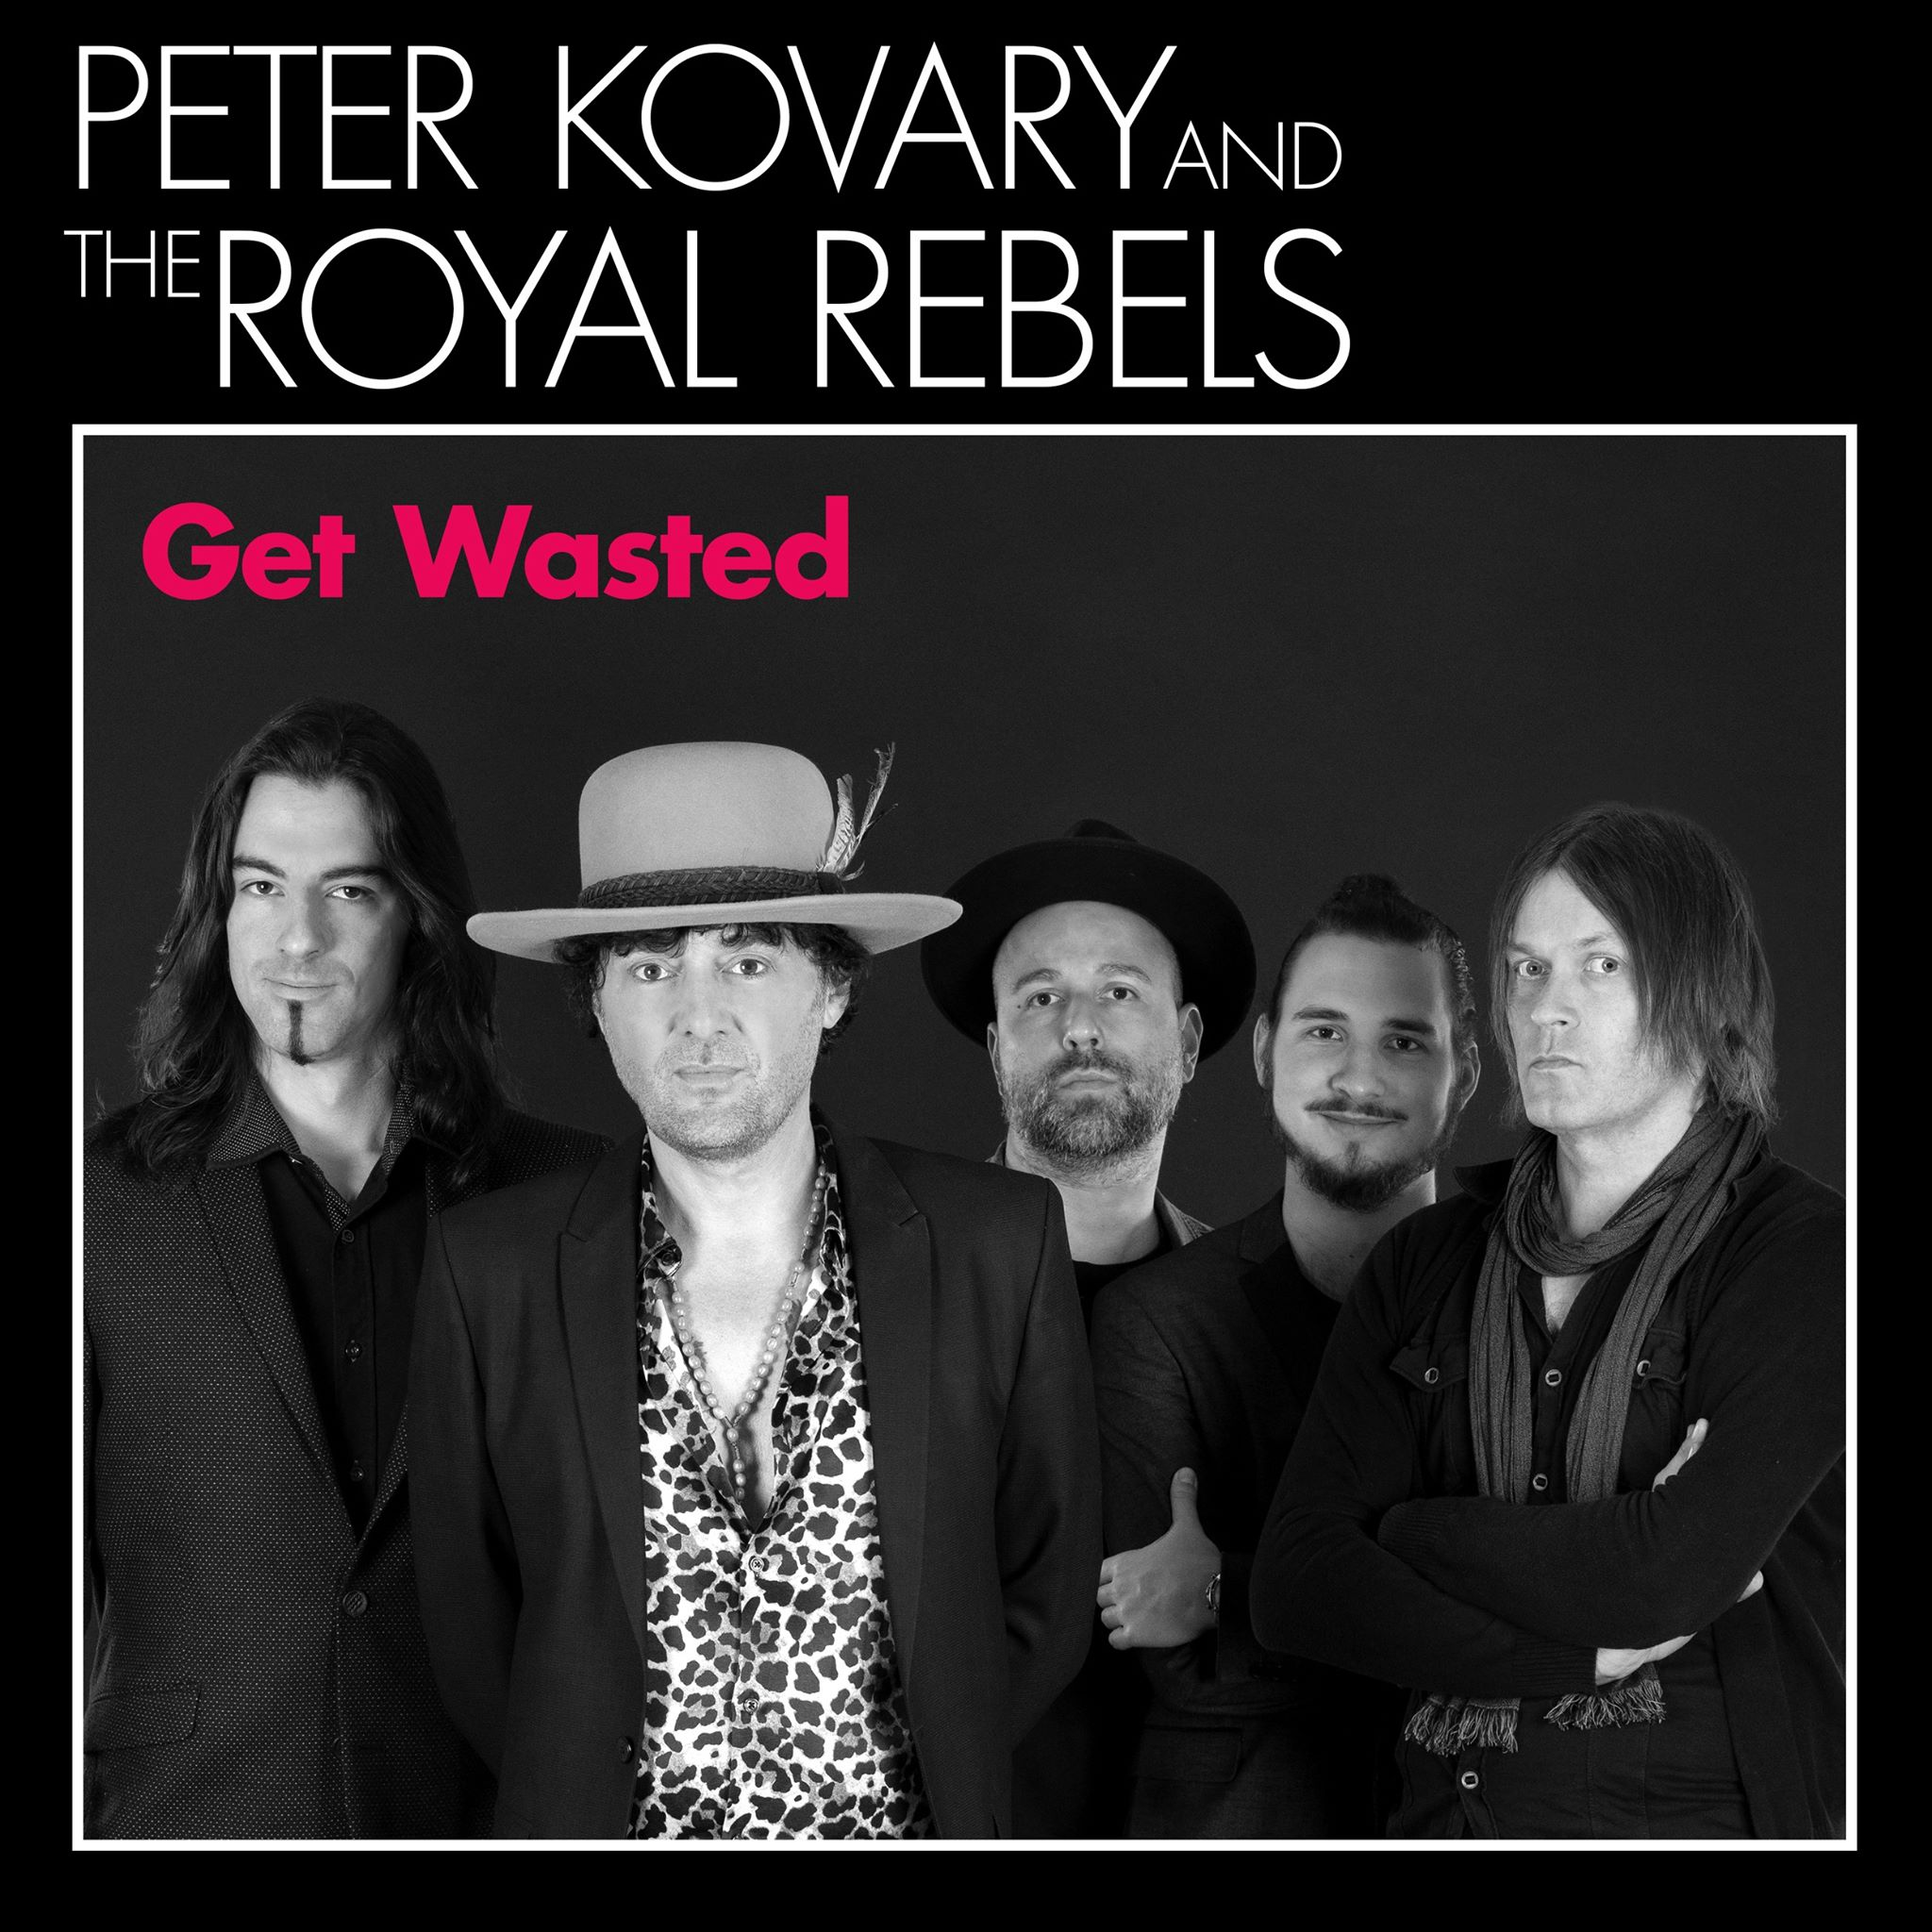 peter_kovary_the_royal_rebels_get_wasted_cover.jpg